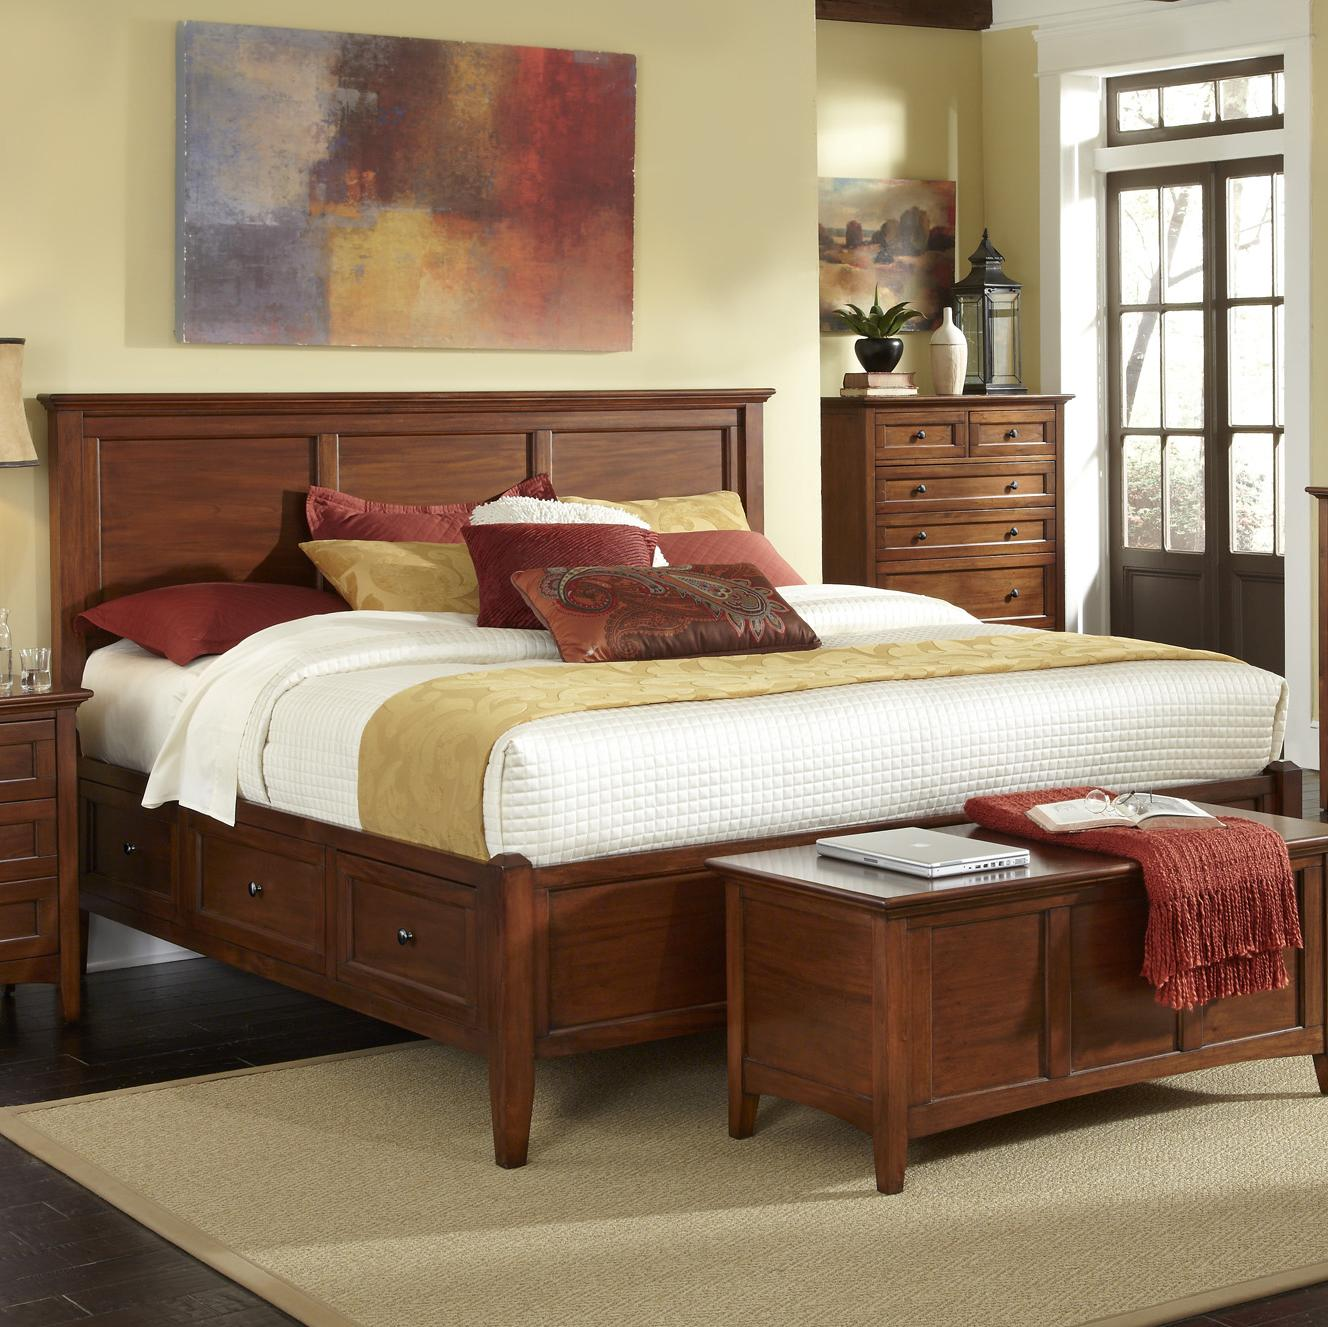 Transitional Queen Bed With 6 Storage Drawers By Aamerica